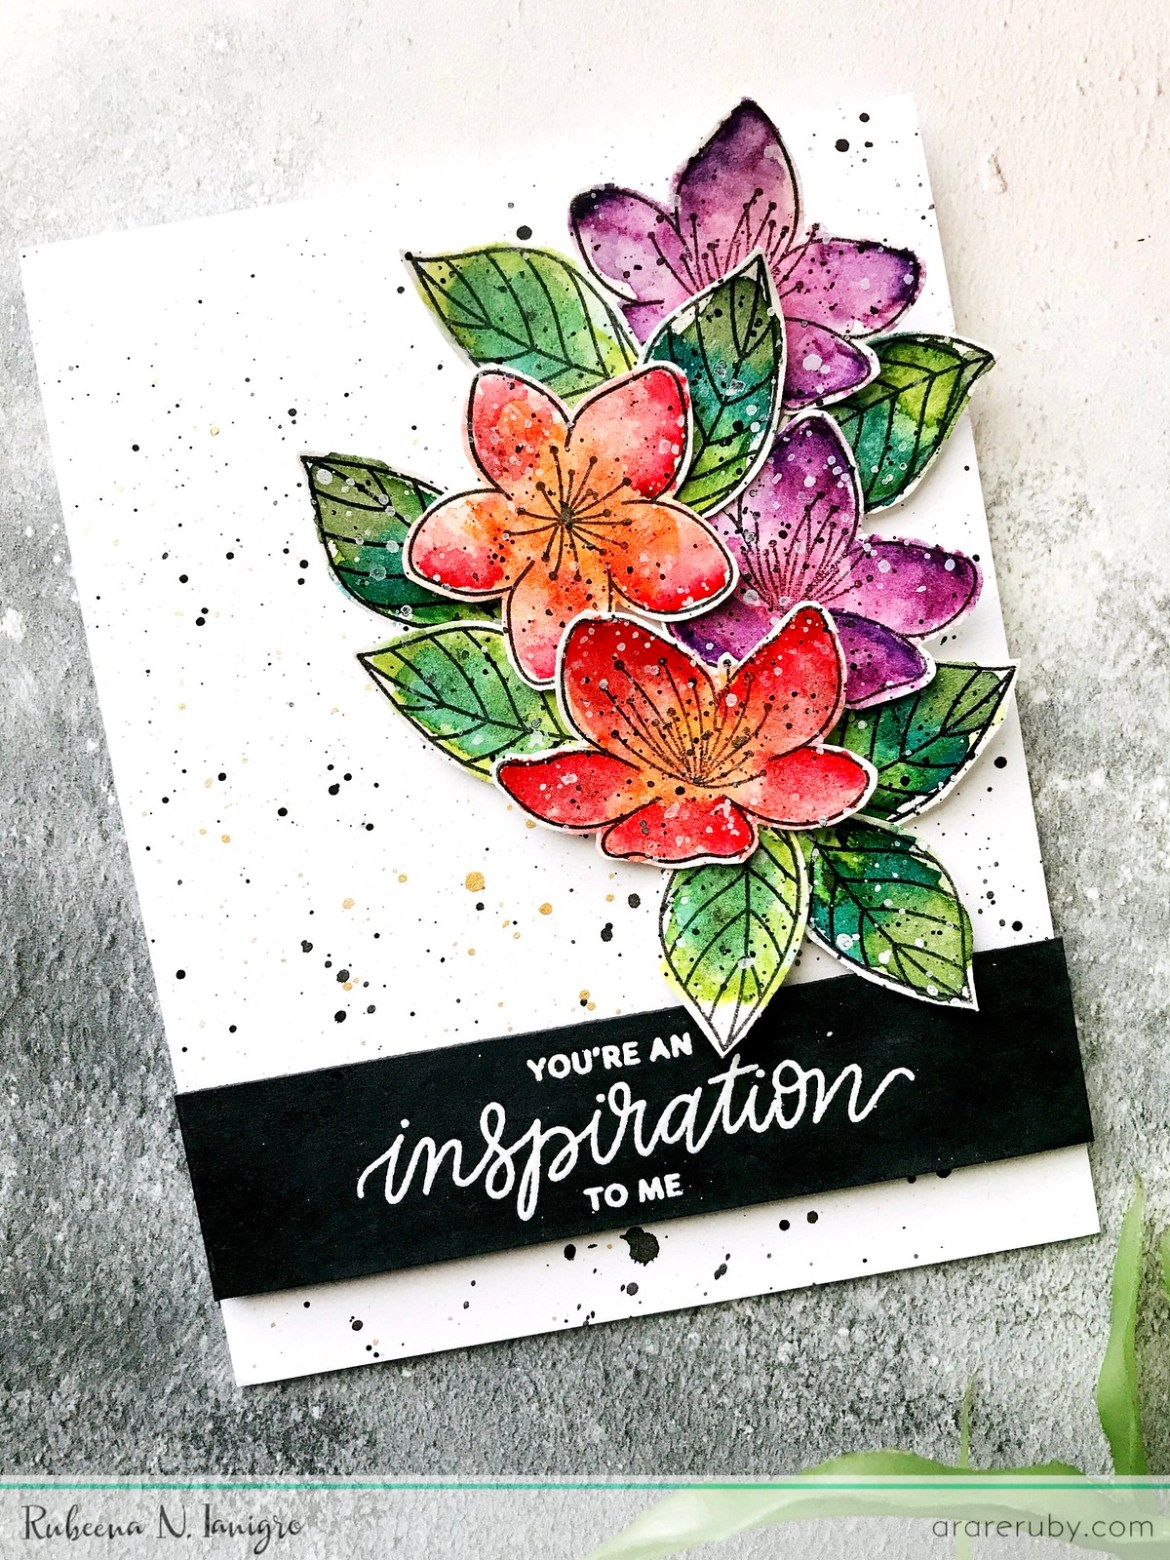 PPP March Blog Hop - Floral Card 1 - Rubeena Ianigro